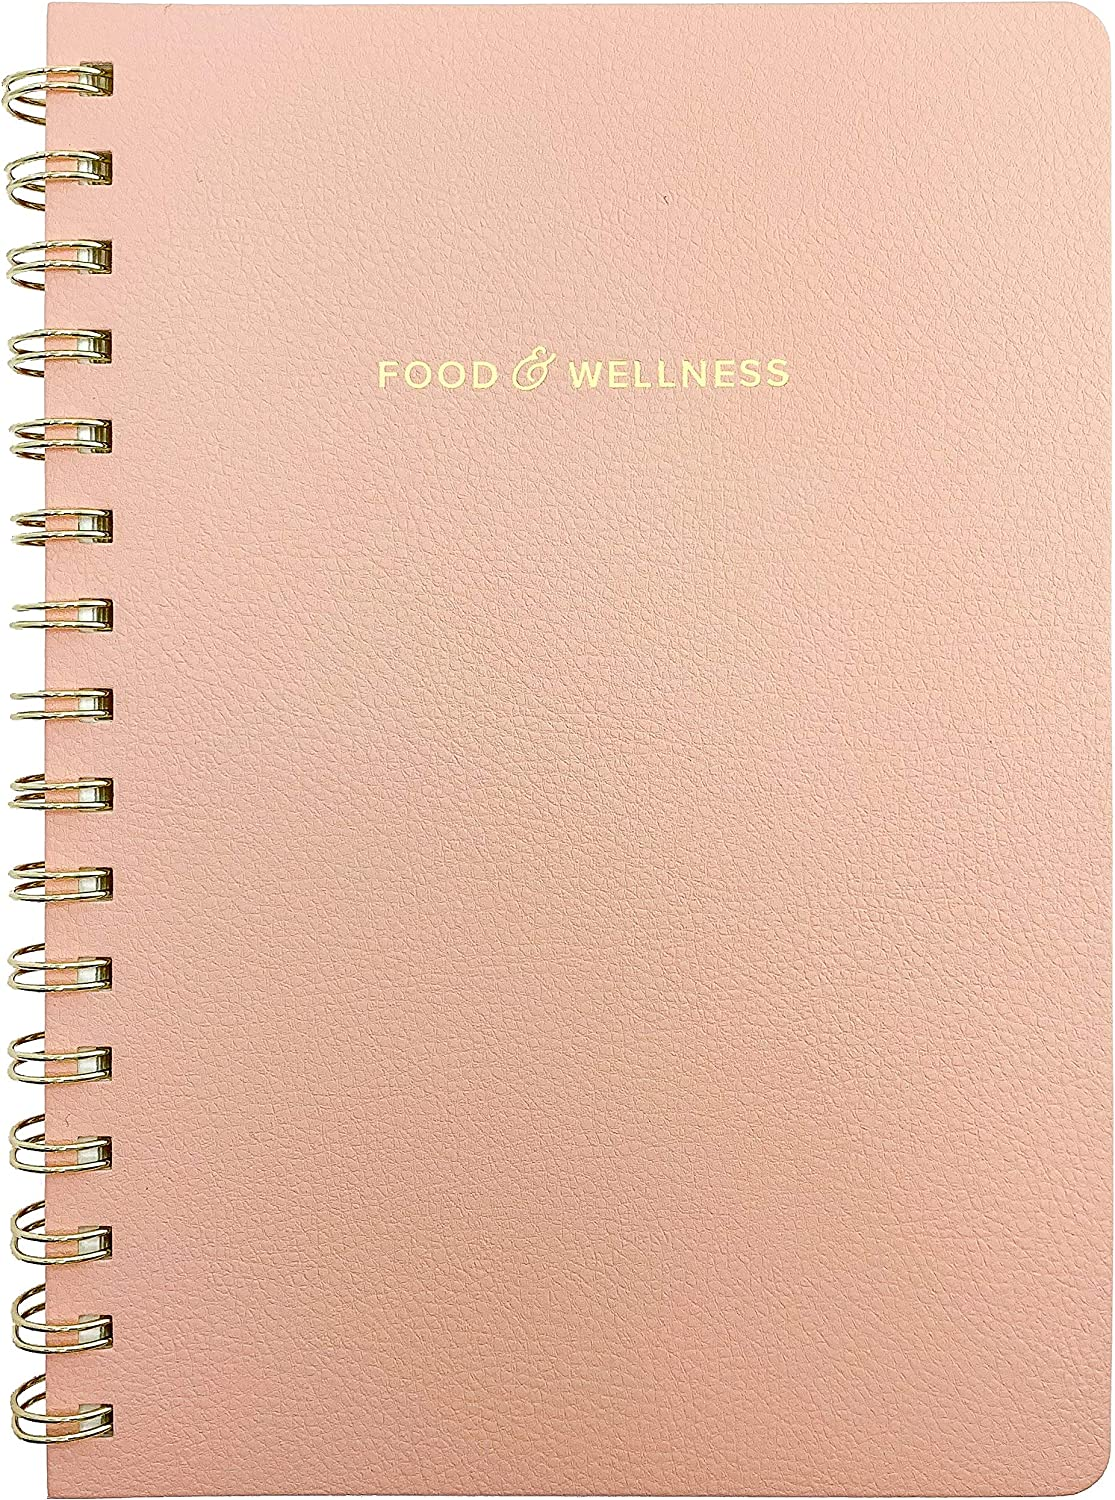 Food and Exercise Journal for Women. Track Meals, Nutrition and Weight Loss - 90 days (Pink)